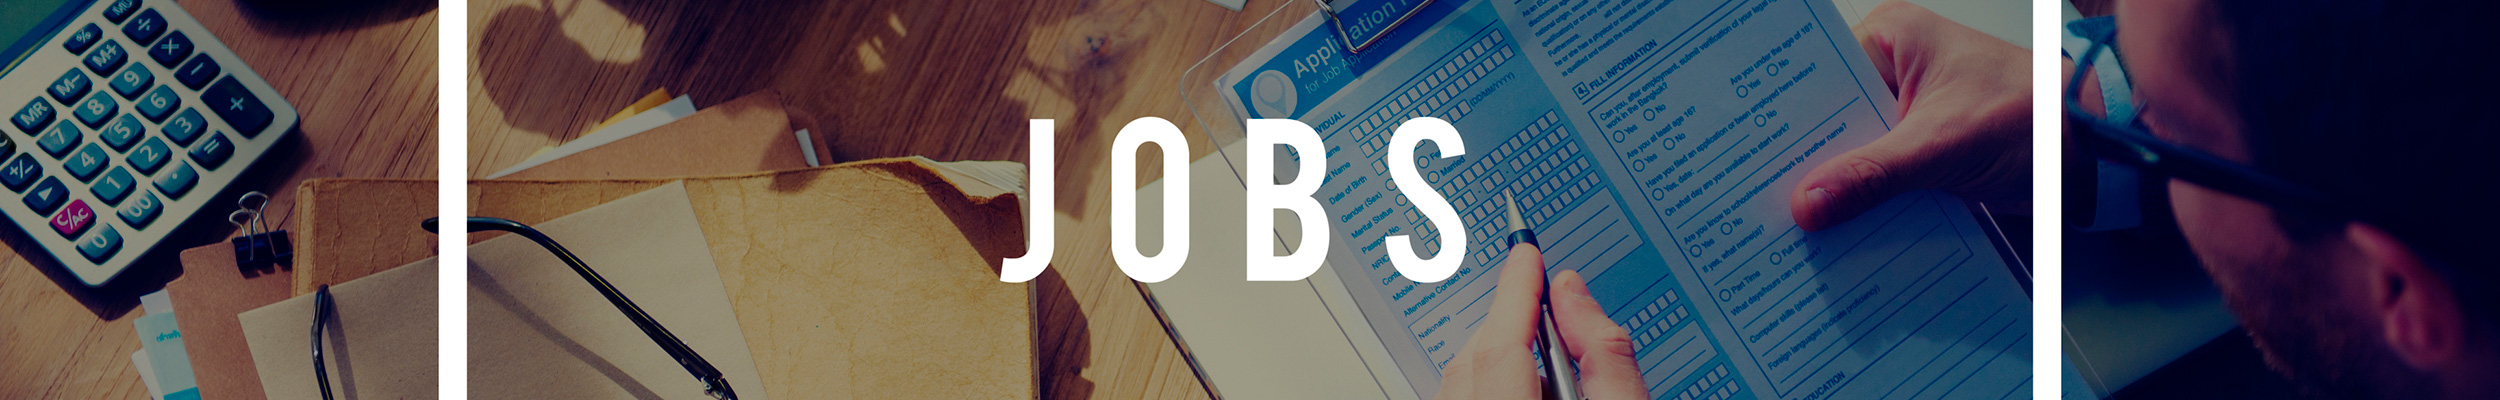 jobs banner image